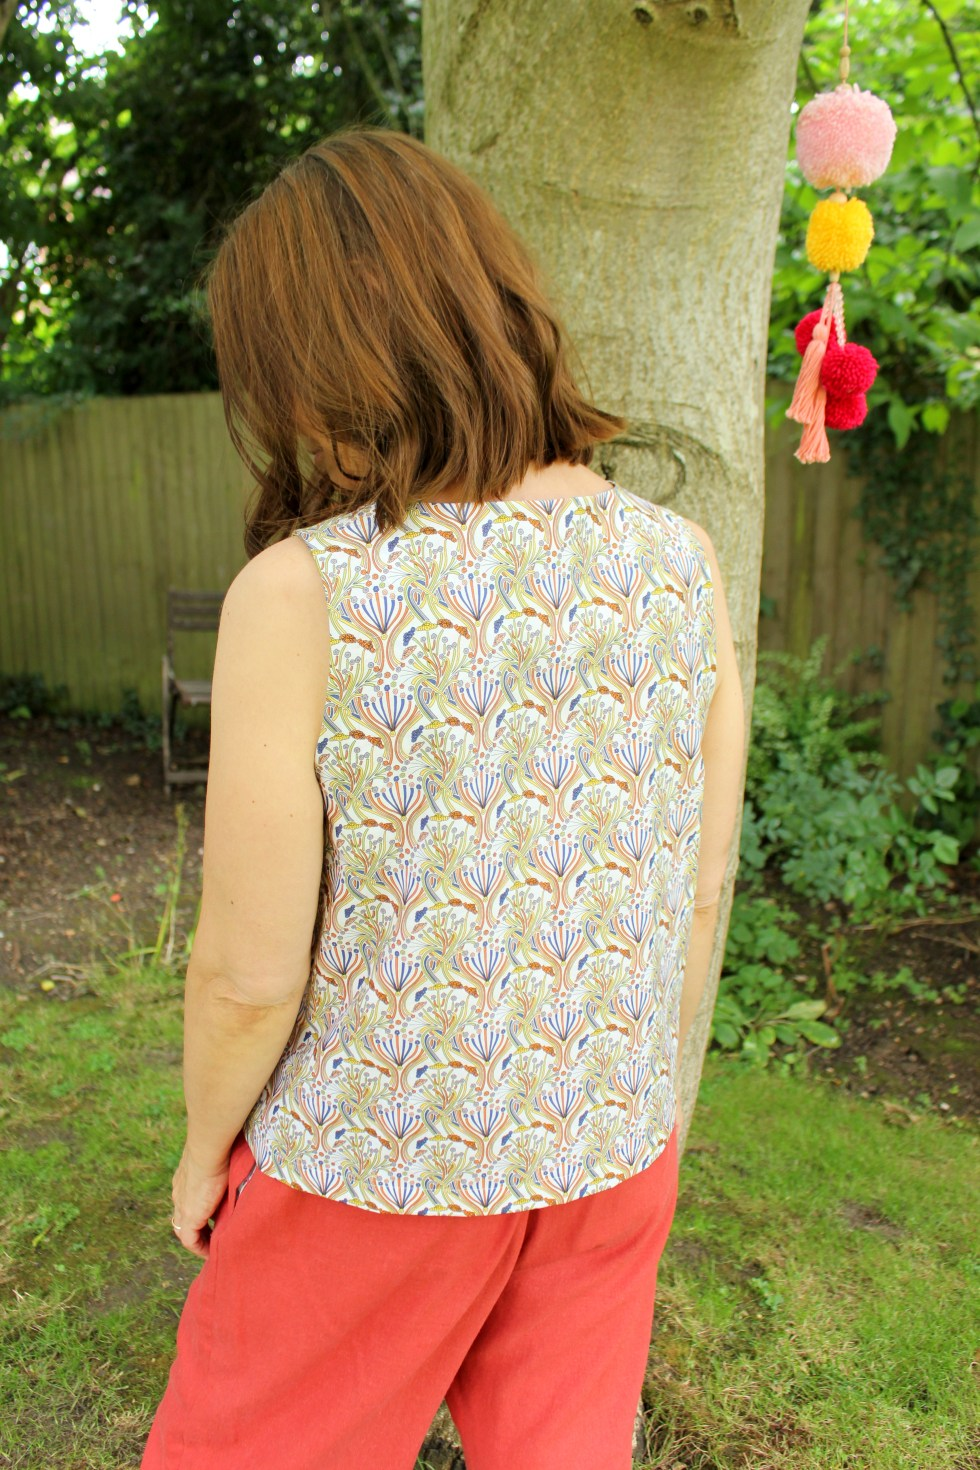 gathered sleeve edge Blouse Boho style one of a kind handmade mustard and brown printed cottonspandex knit fabric top MED